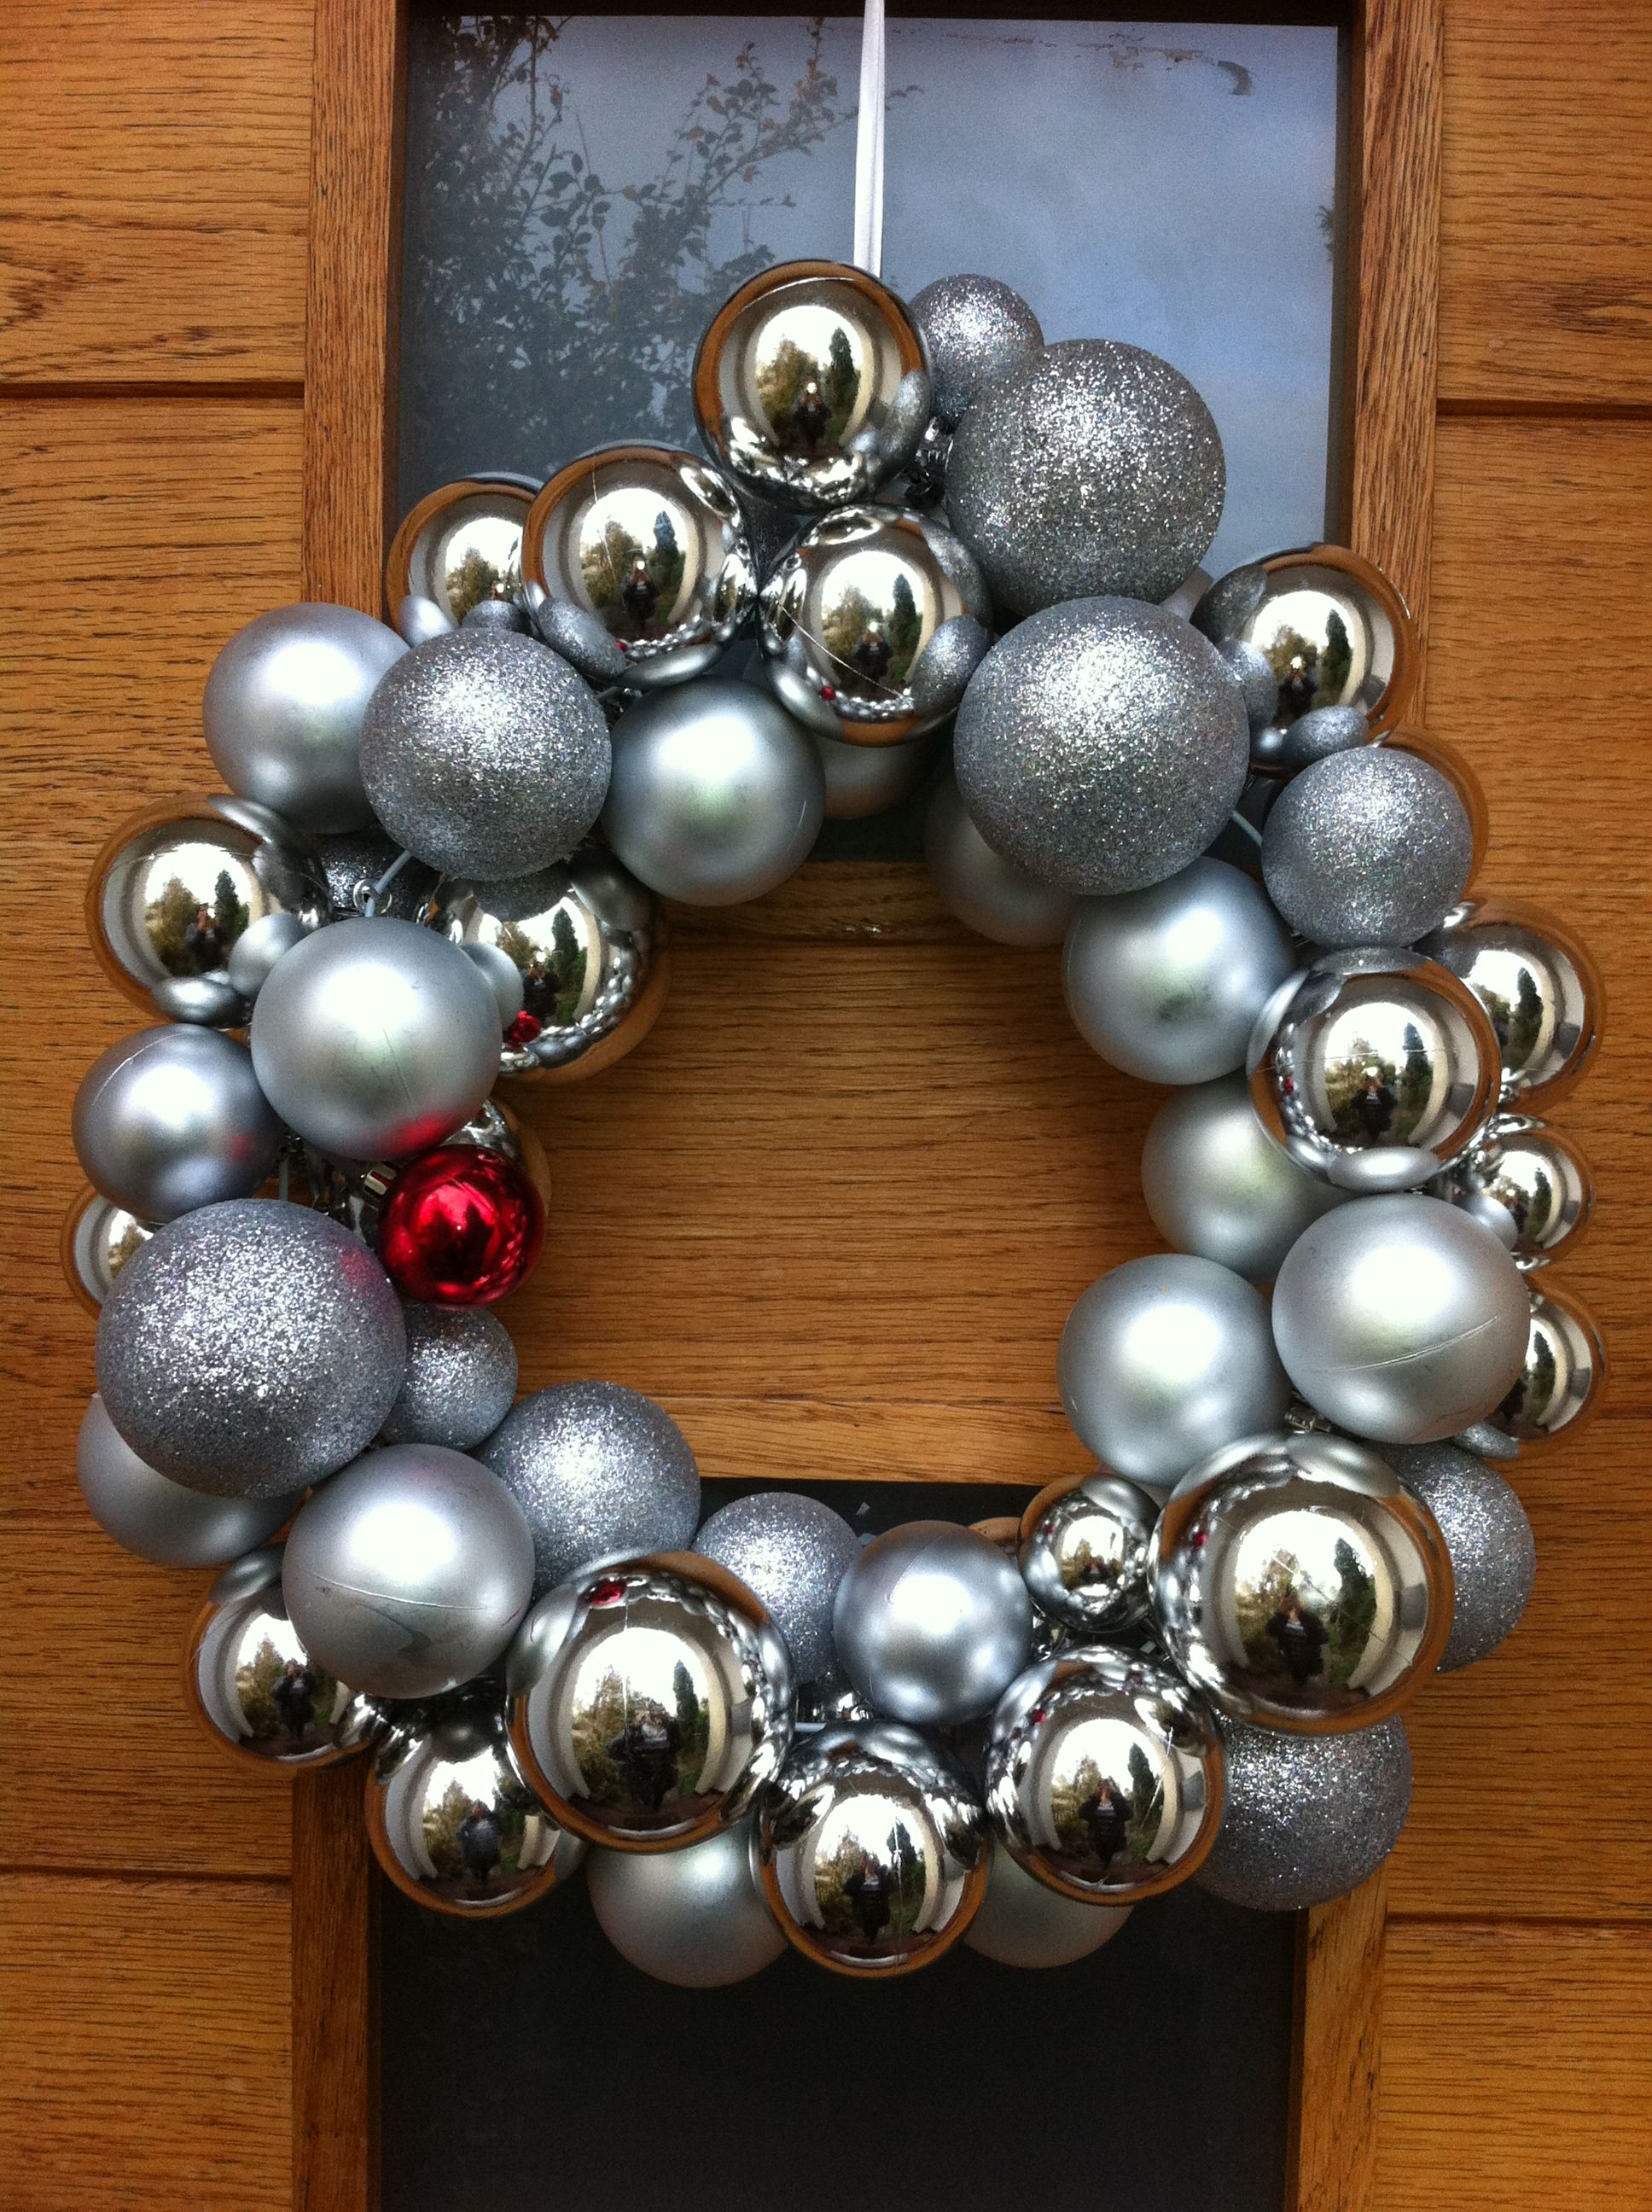 Christmas wreath. Bauble wreath. Threaded baubles on a bent wire hanger. 30 mins to make, 1 week to realise how to do it.